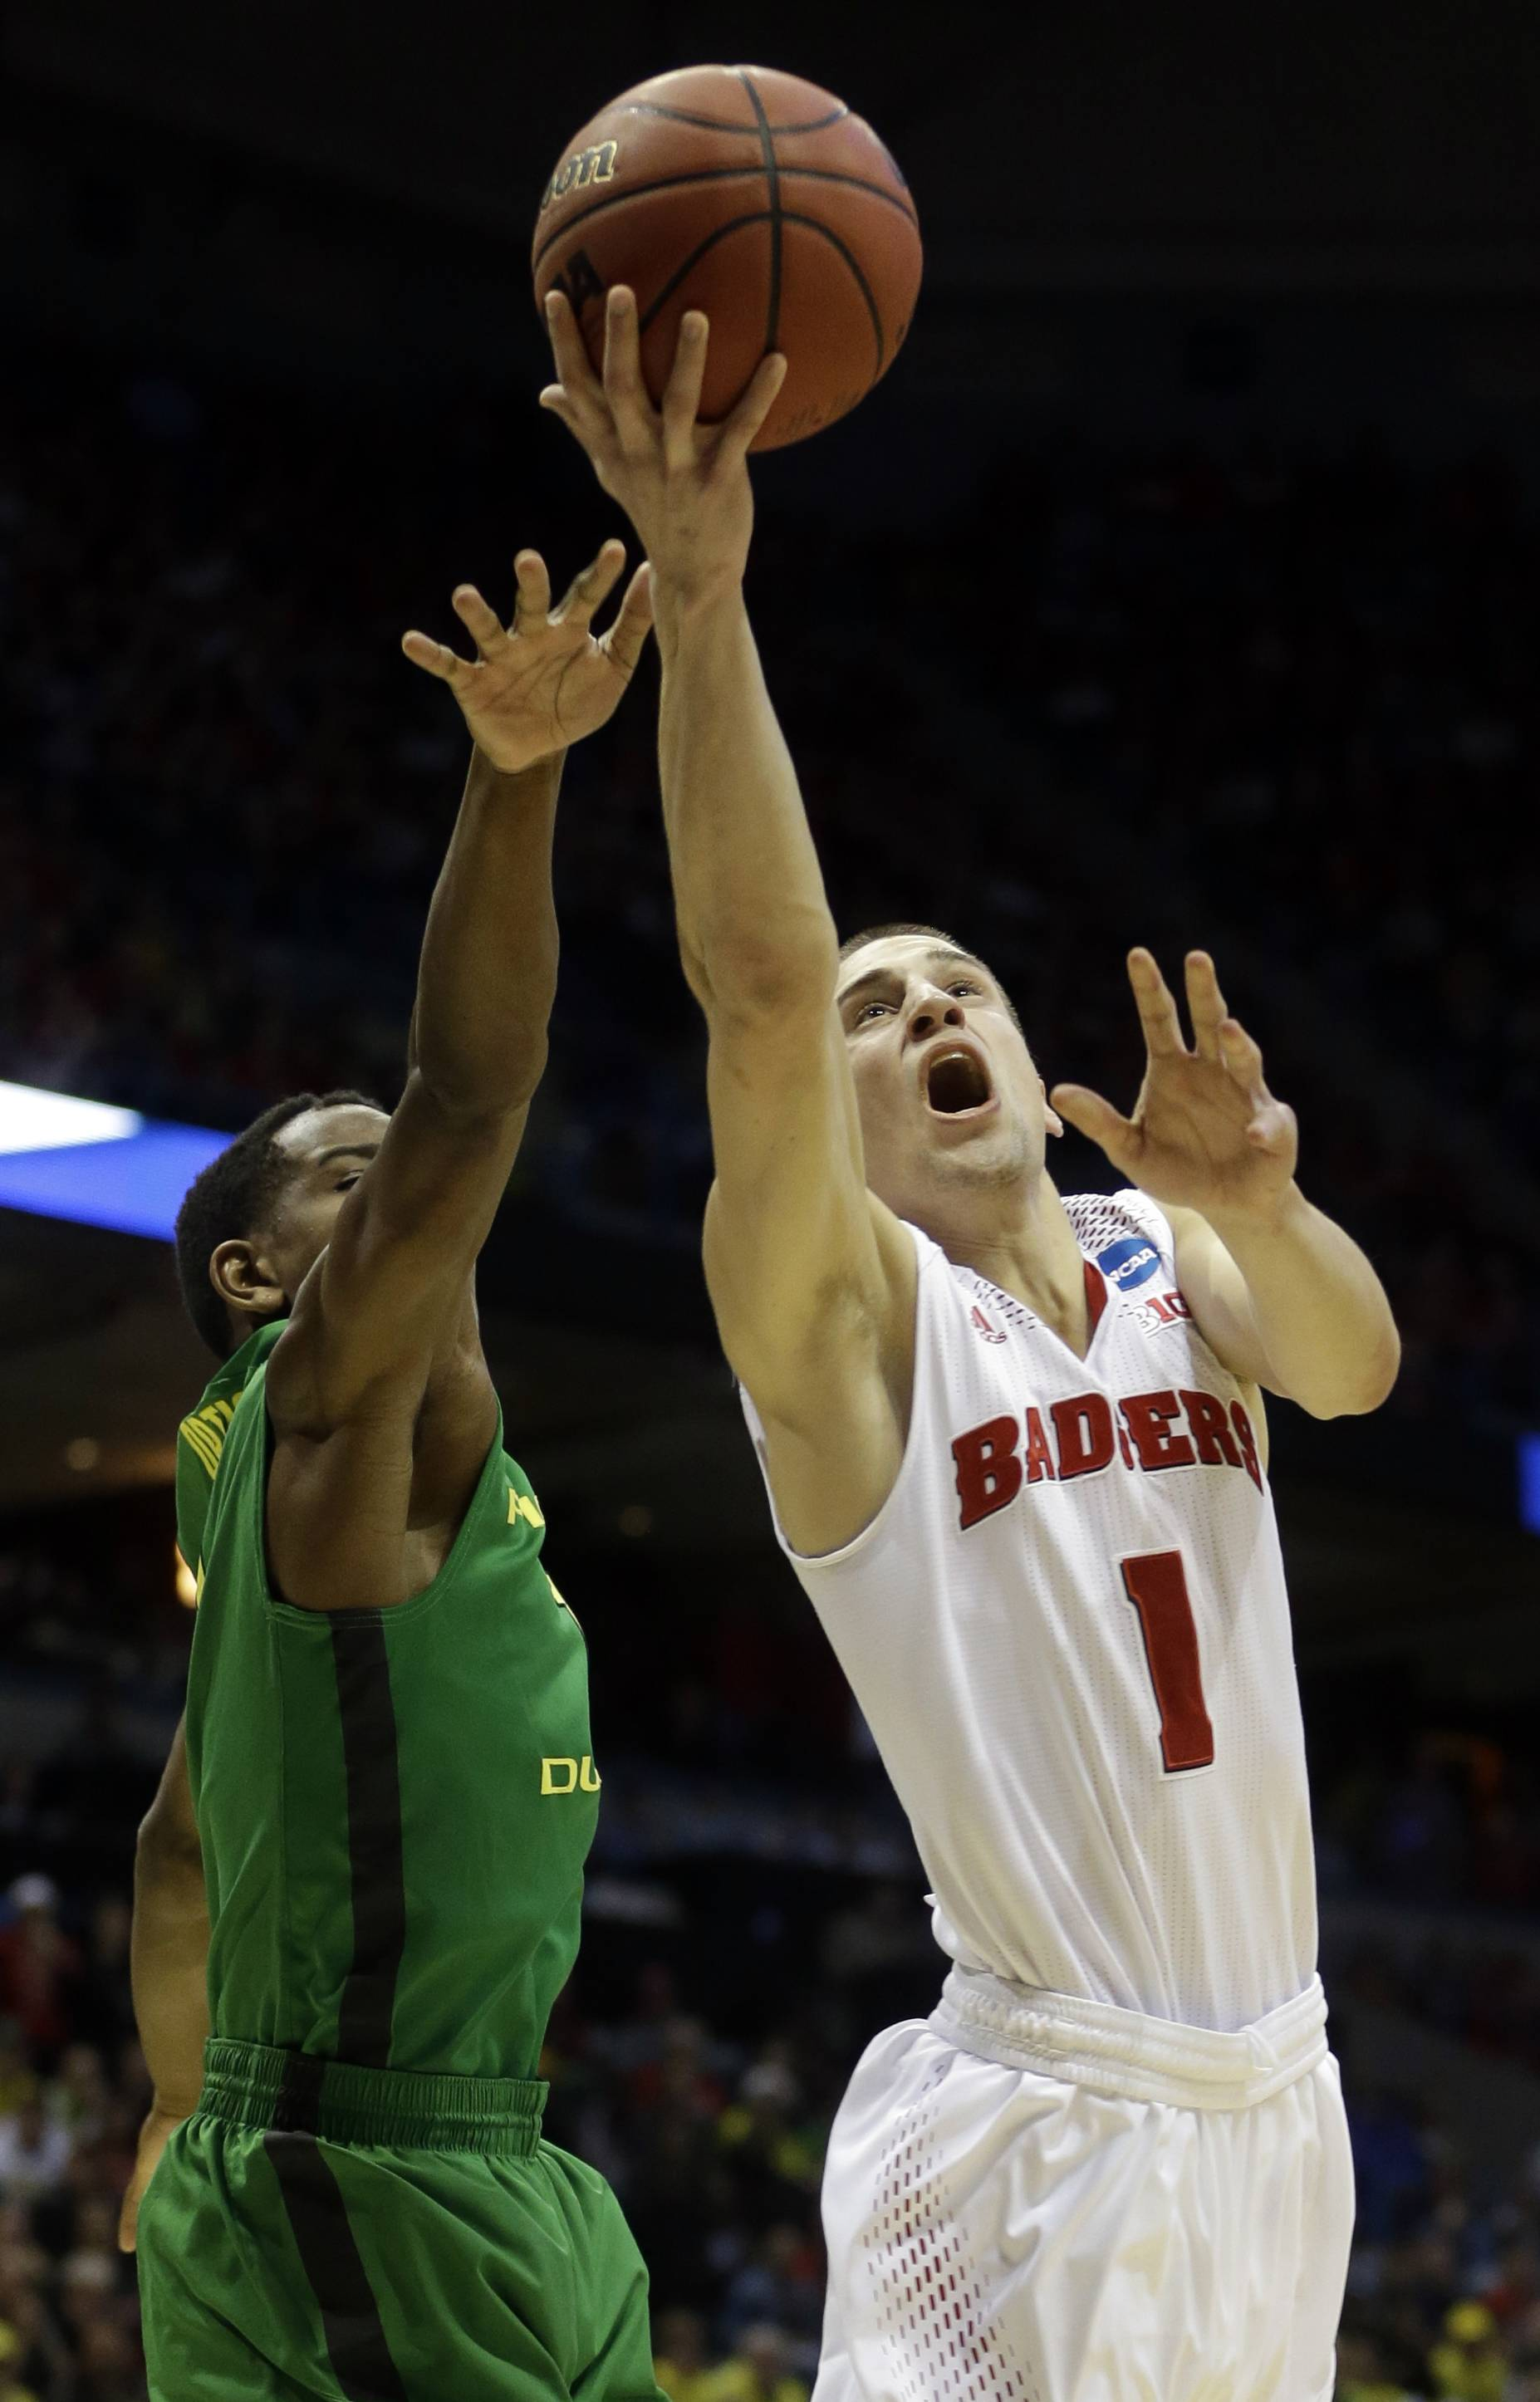 Wisconsin guard Ben Brust goes up for a shot against Oregon guard Dominic Artis during the second half of NCAA play March 22 in Milwaukee.